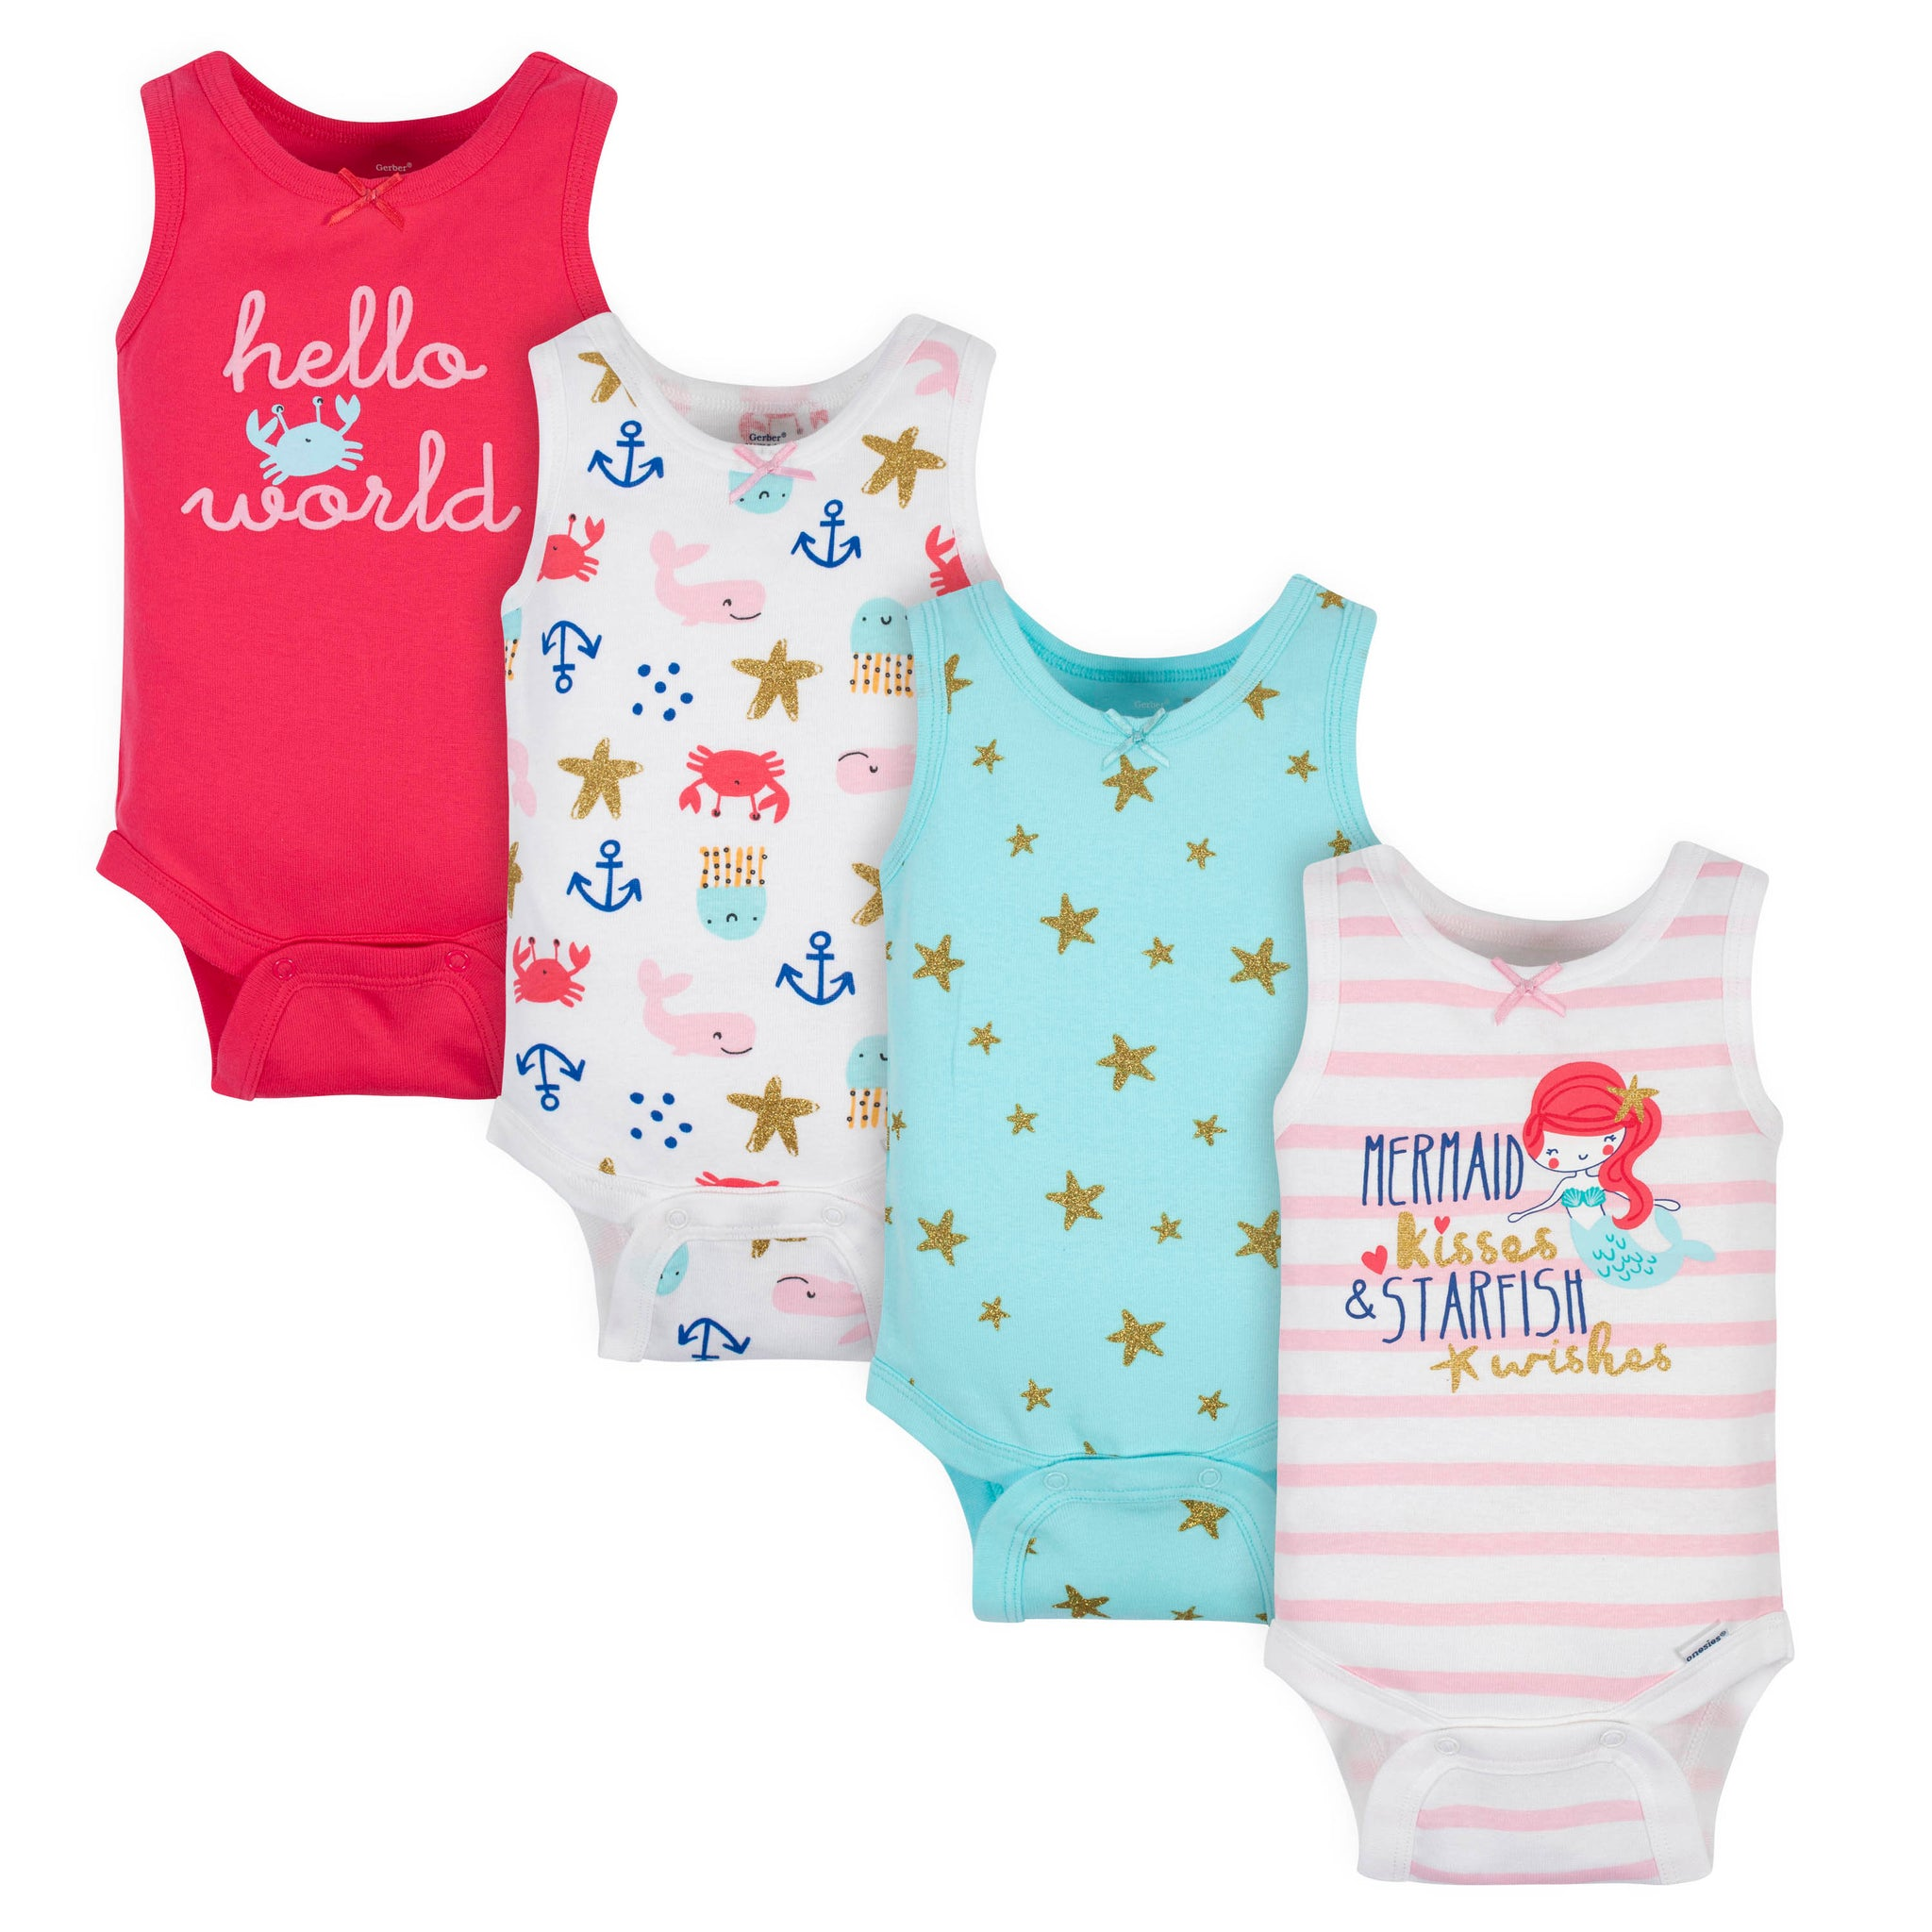 4-Pack Baby Girls Sea Creatures Onesies® Bodysuits-Gerber Childrenswear Wholesale